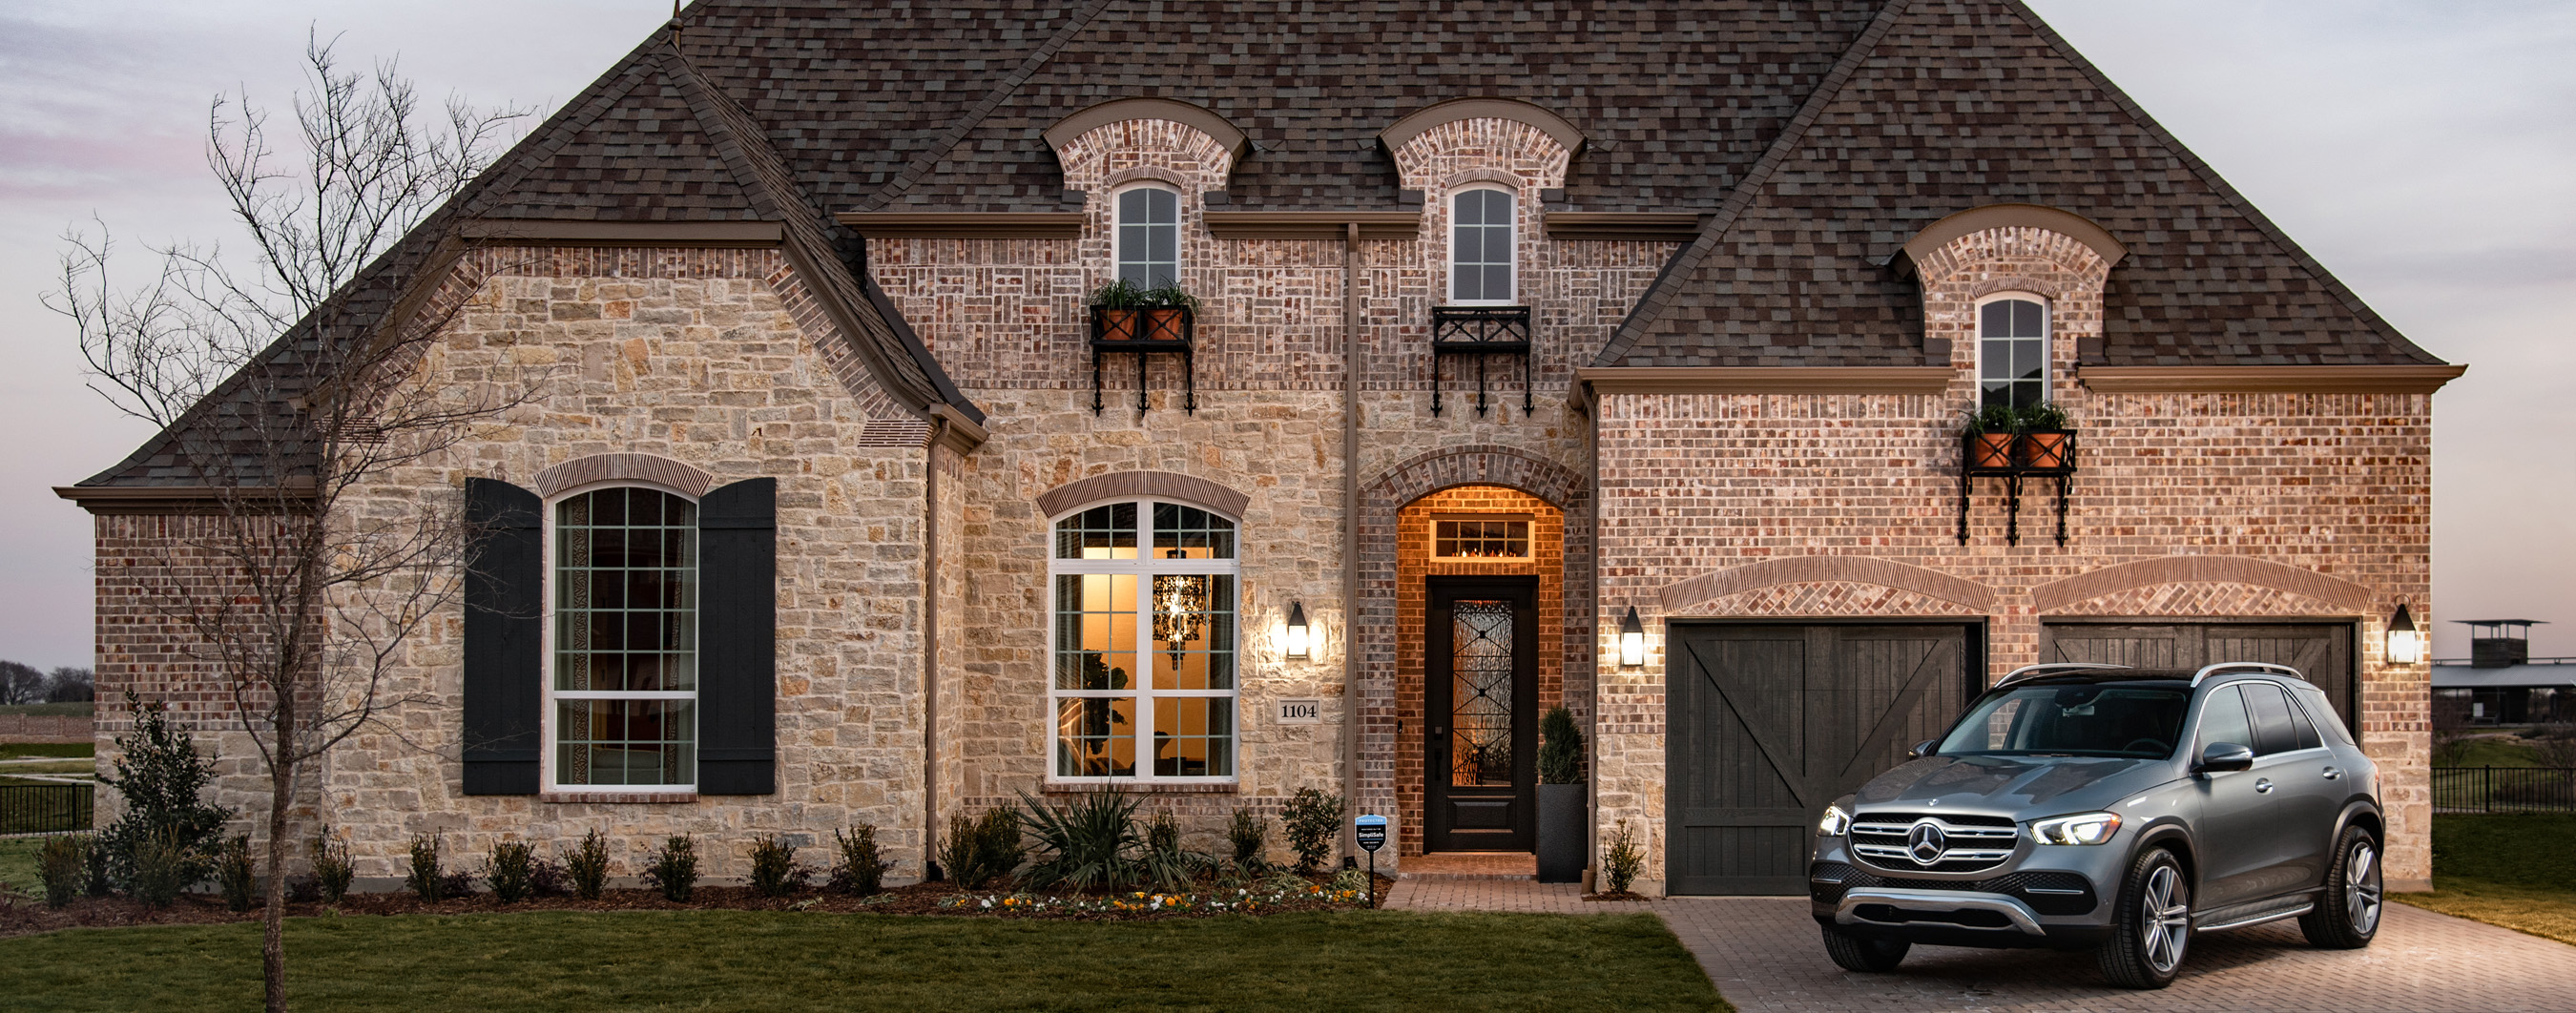 Take a Virtual Tour of HGTV Smart Home 2019 located in Roanoke, Texas